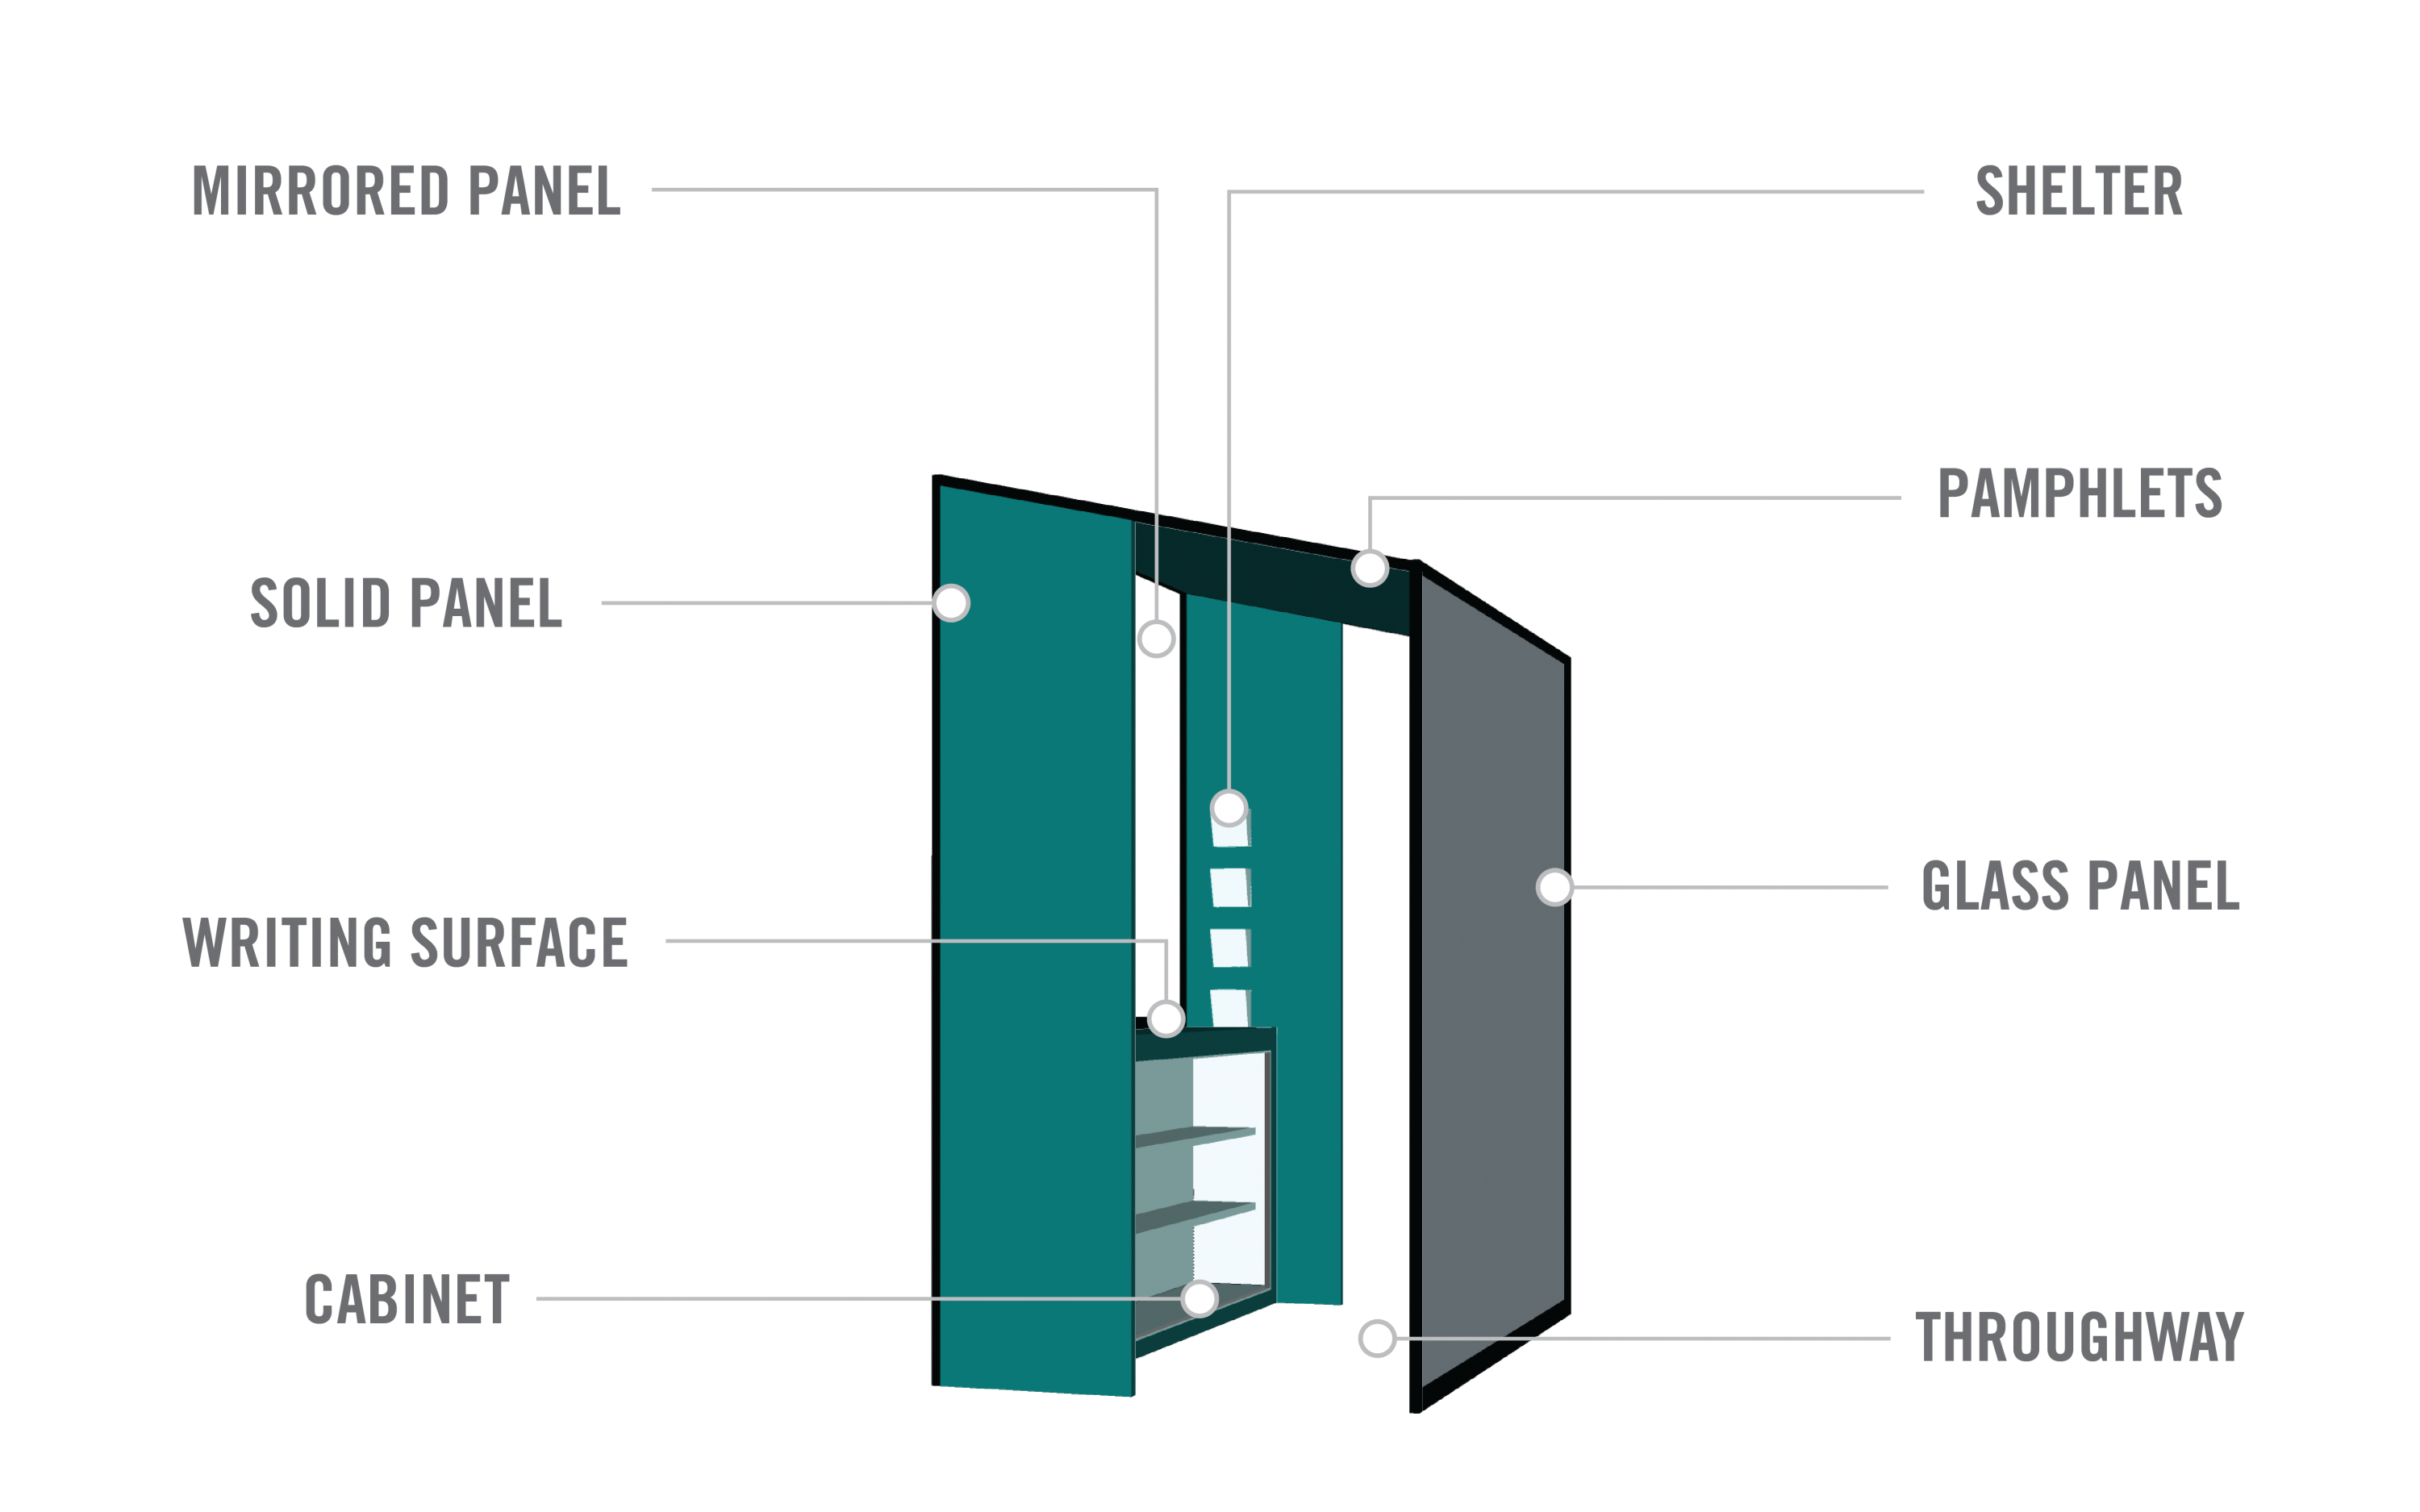 Booth Diagram